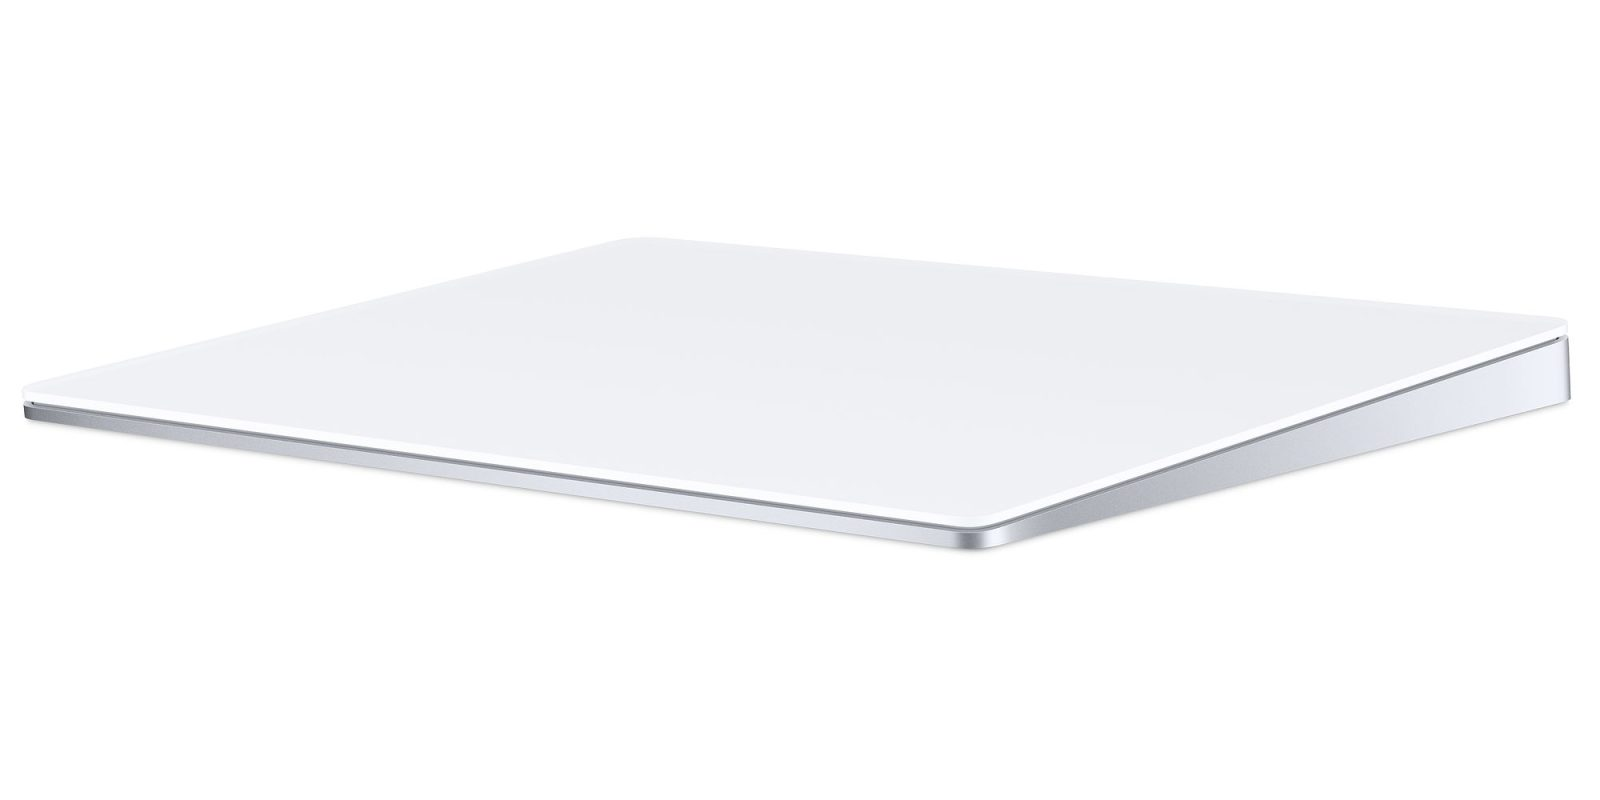 d2882021db3 Apple Magic Trackpad 2 hits Amazon all-time low at $99 shipped (Reg. $129)